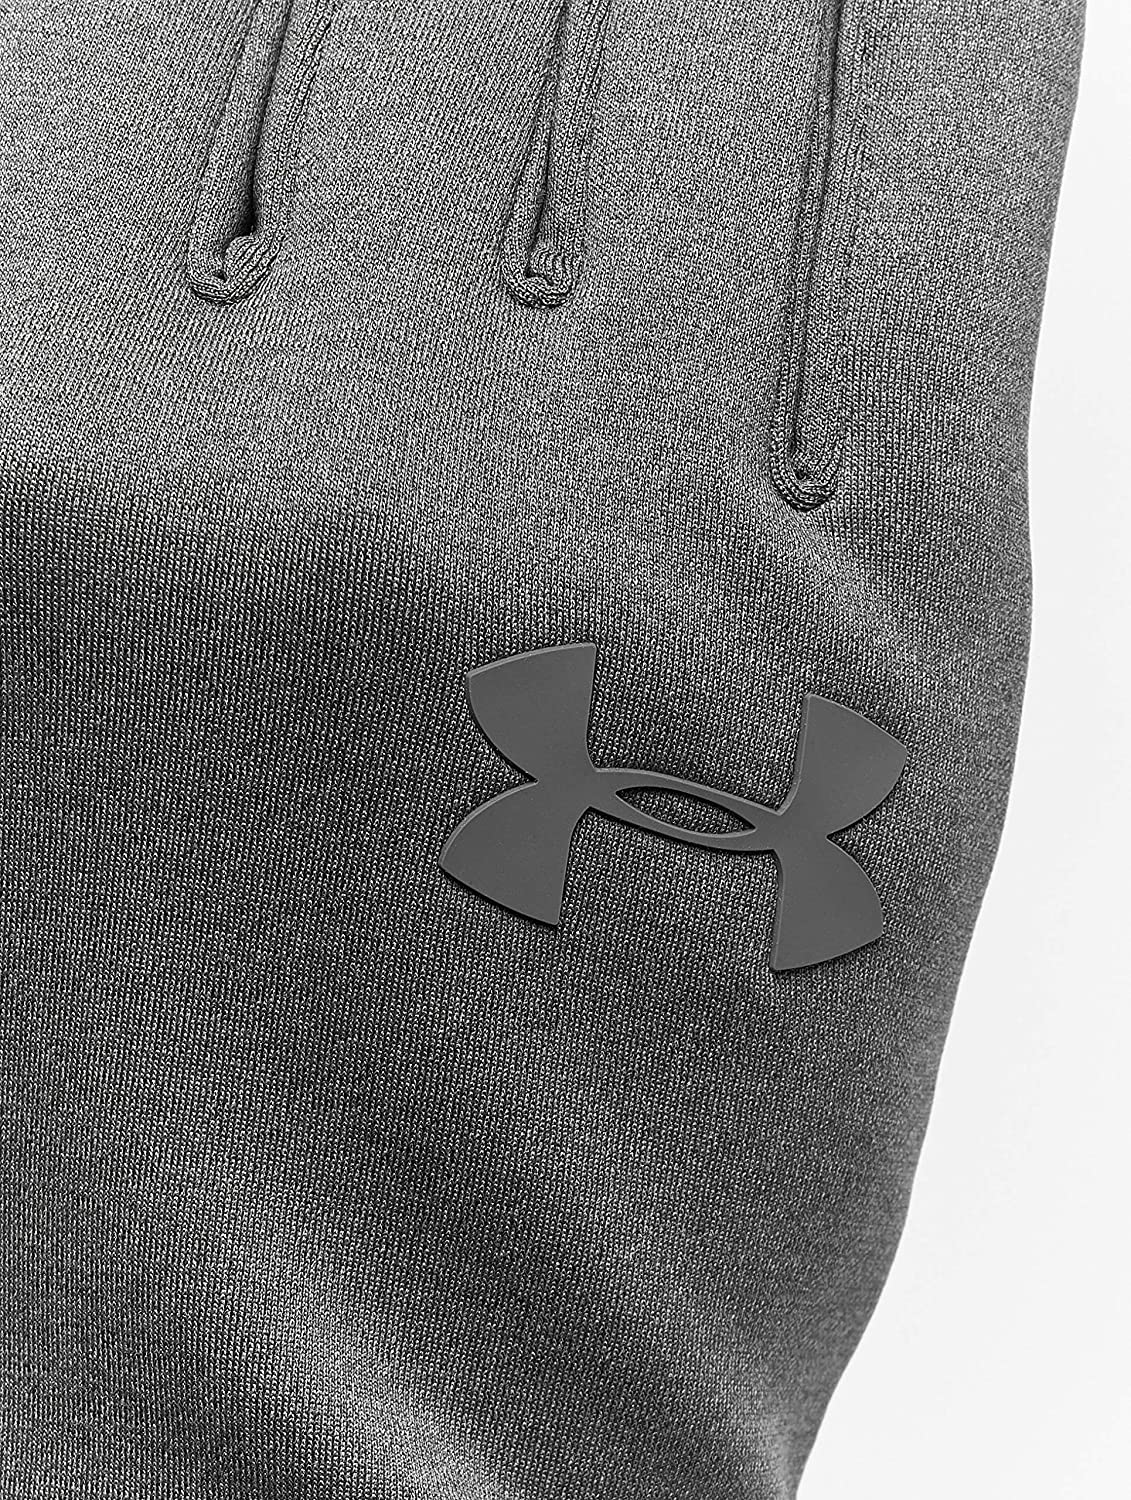 Under Armour Mens Mens Liner 2.0 Gloves